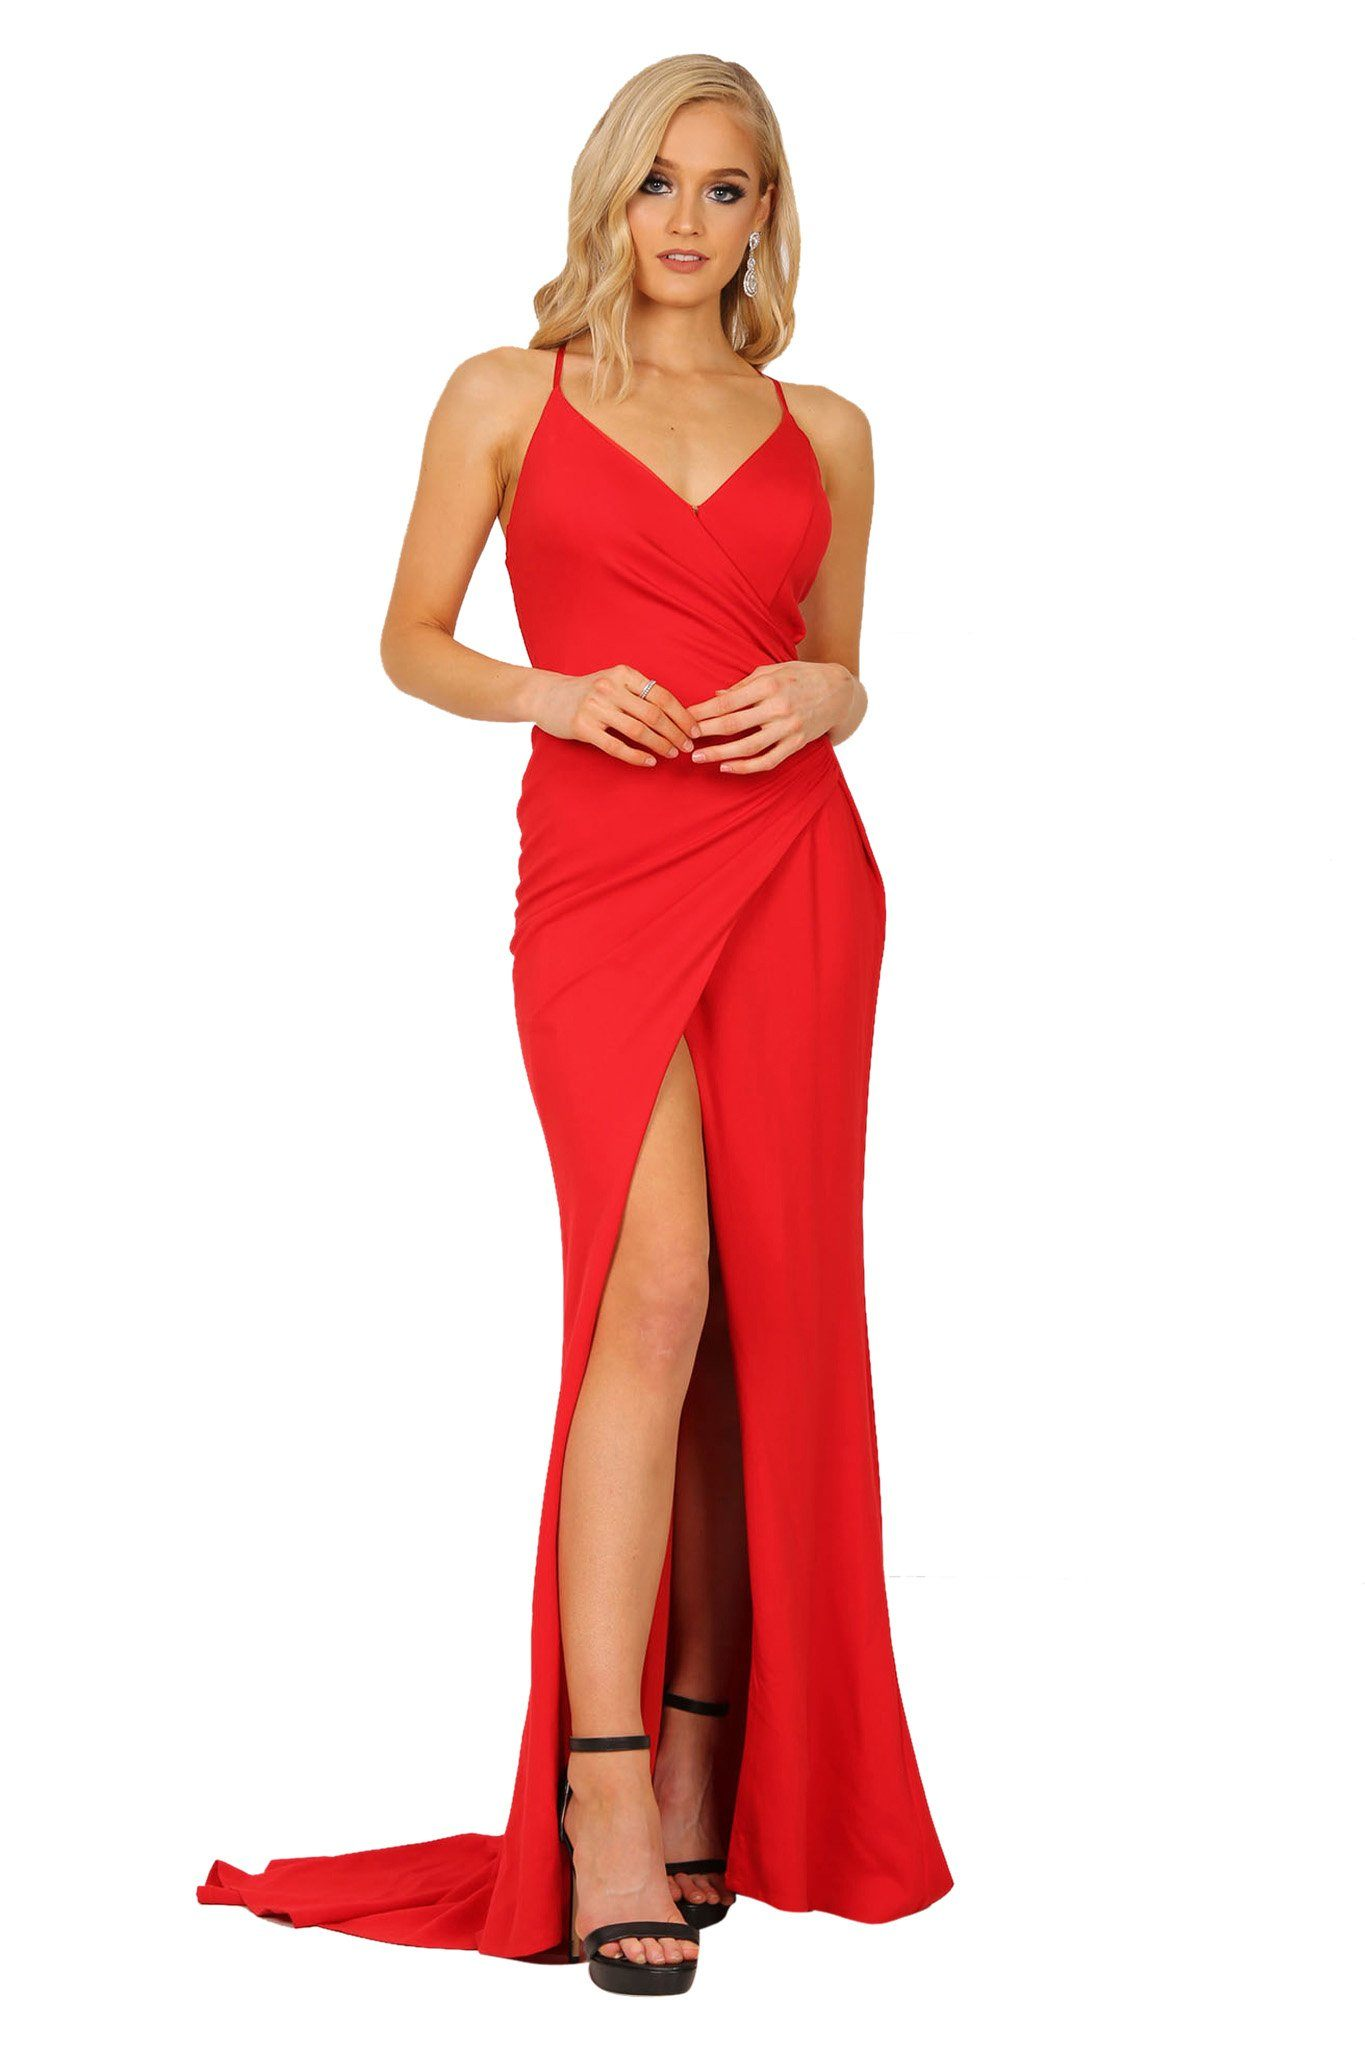 Red faux wrap maxi dress with v neckline, crisscross back straps, high front slit and long train